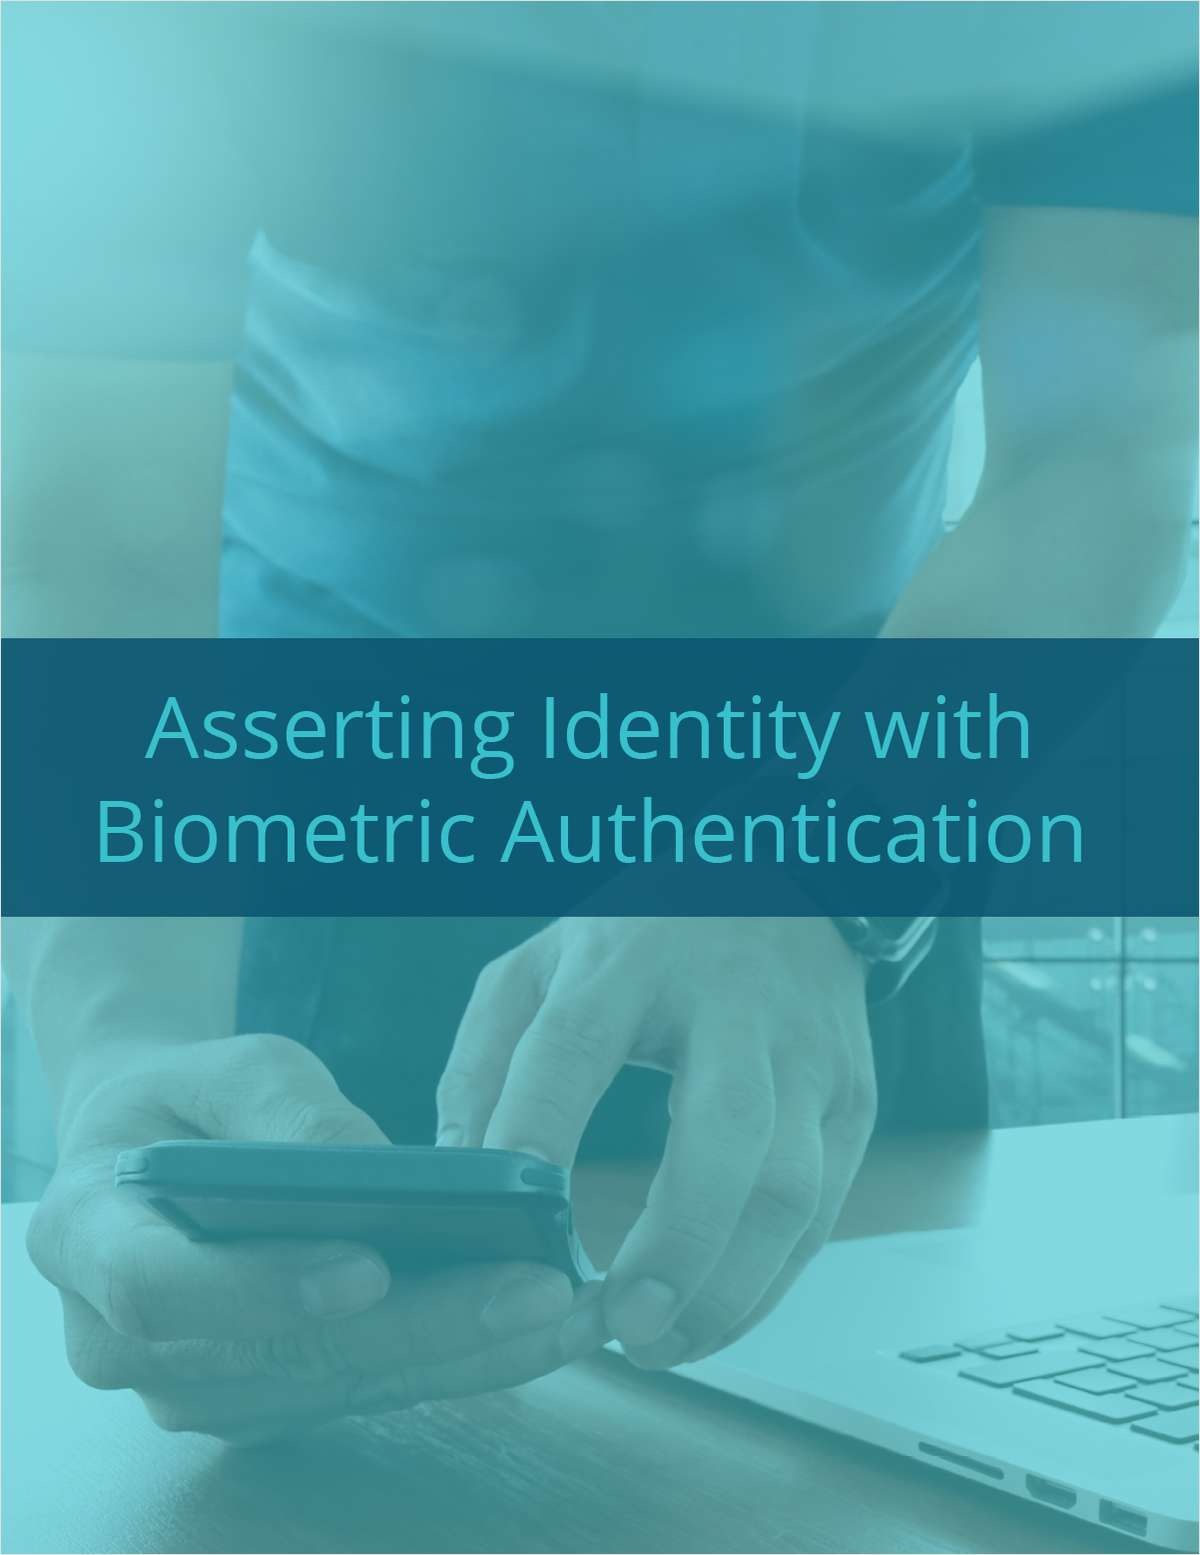 Asserting Identity with Biometric Authentication